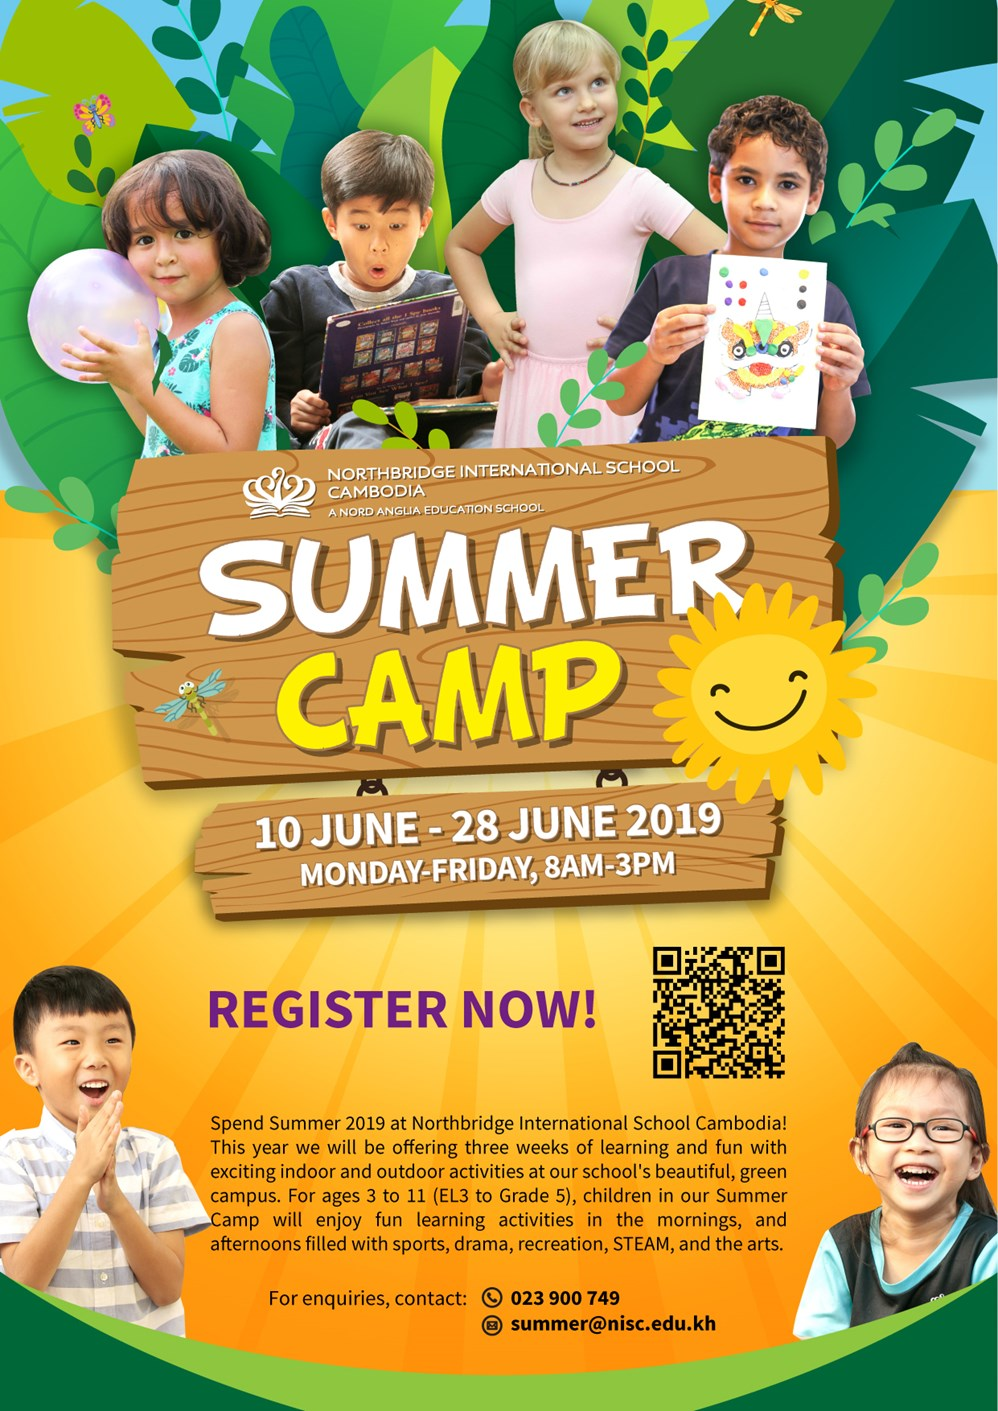 Northbridge International School Cambodia - Summer Camp 2019